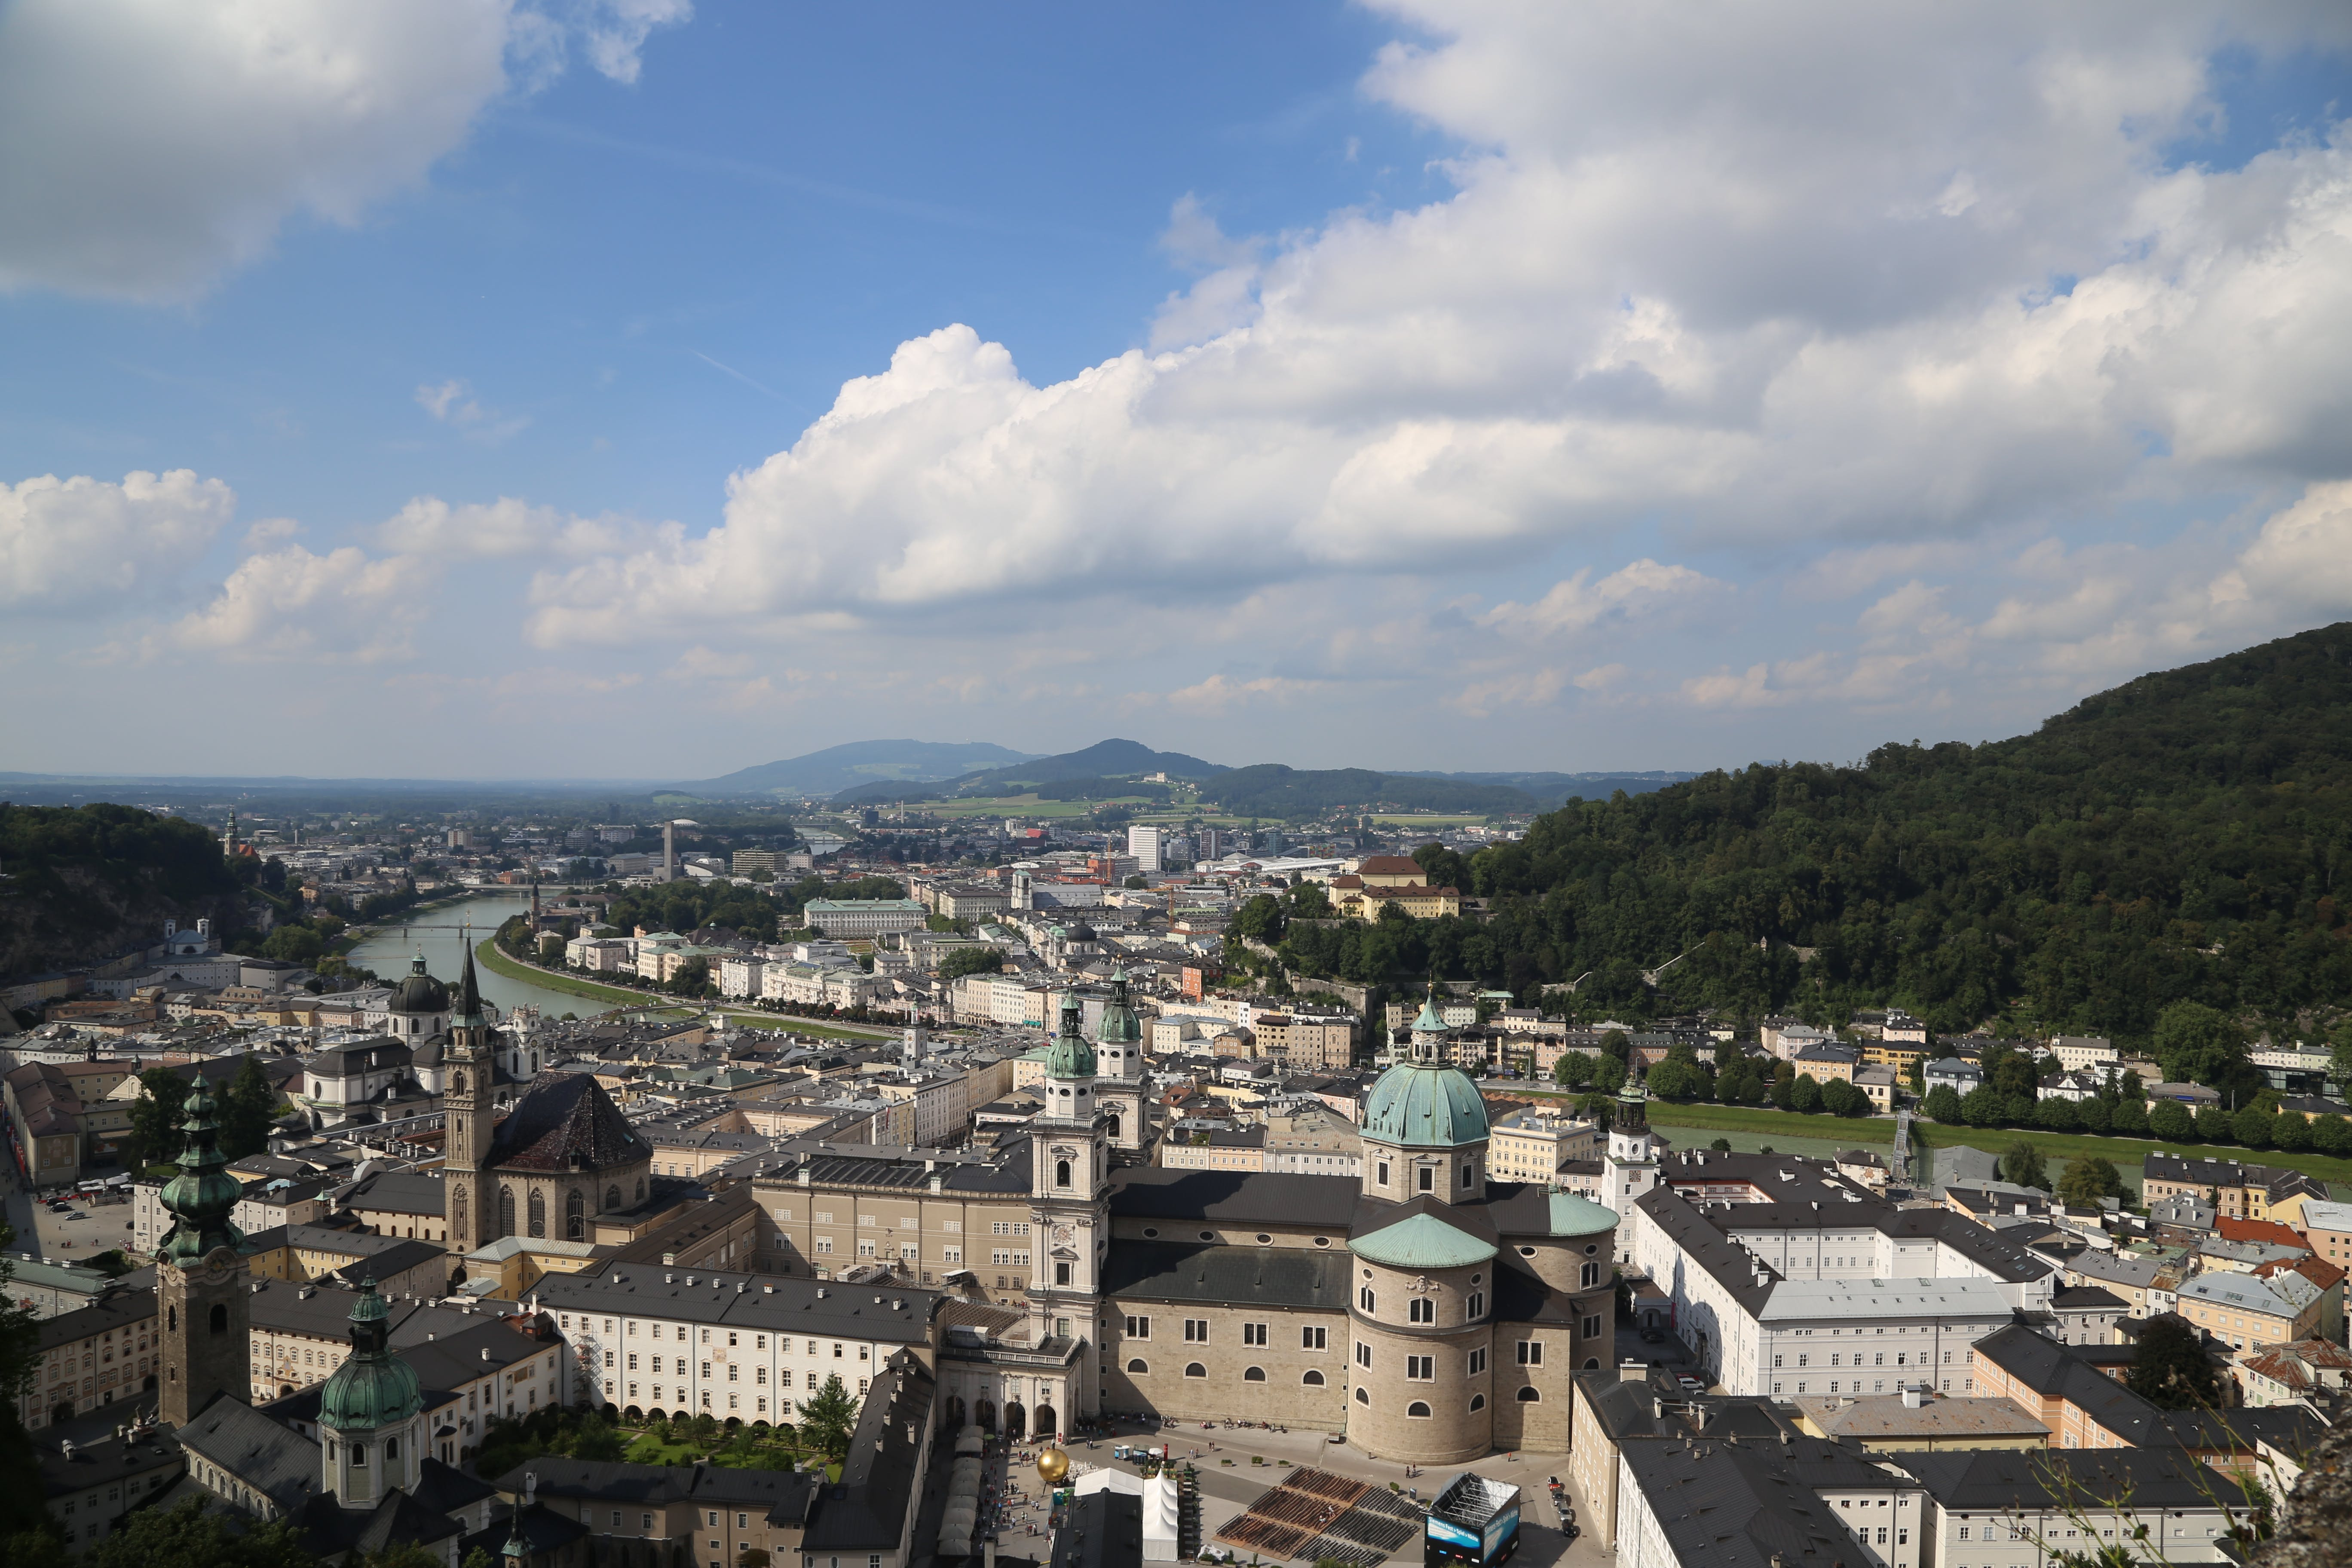 Free stock photo of austria, city, historic center, medieval town